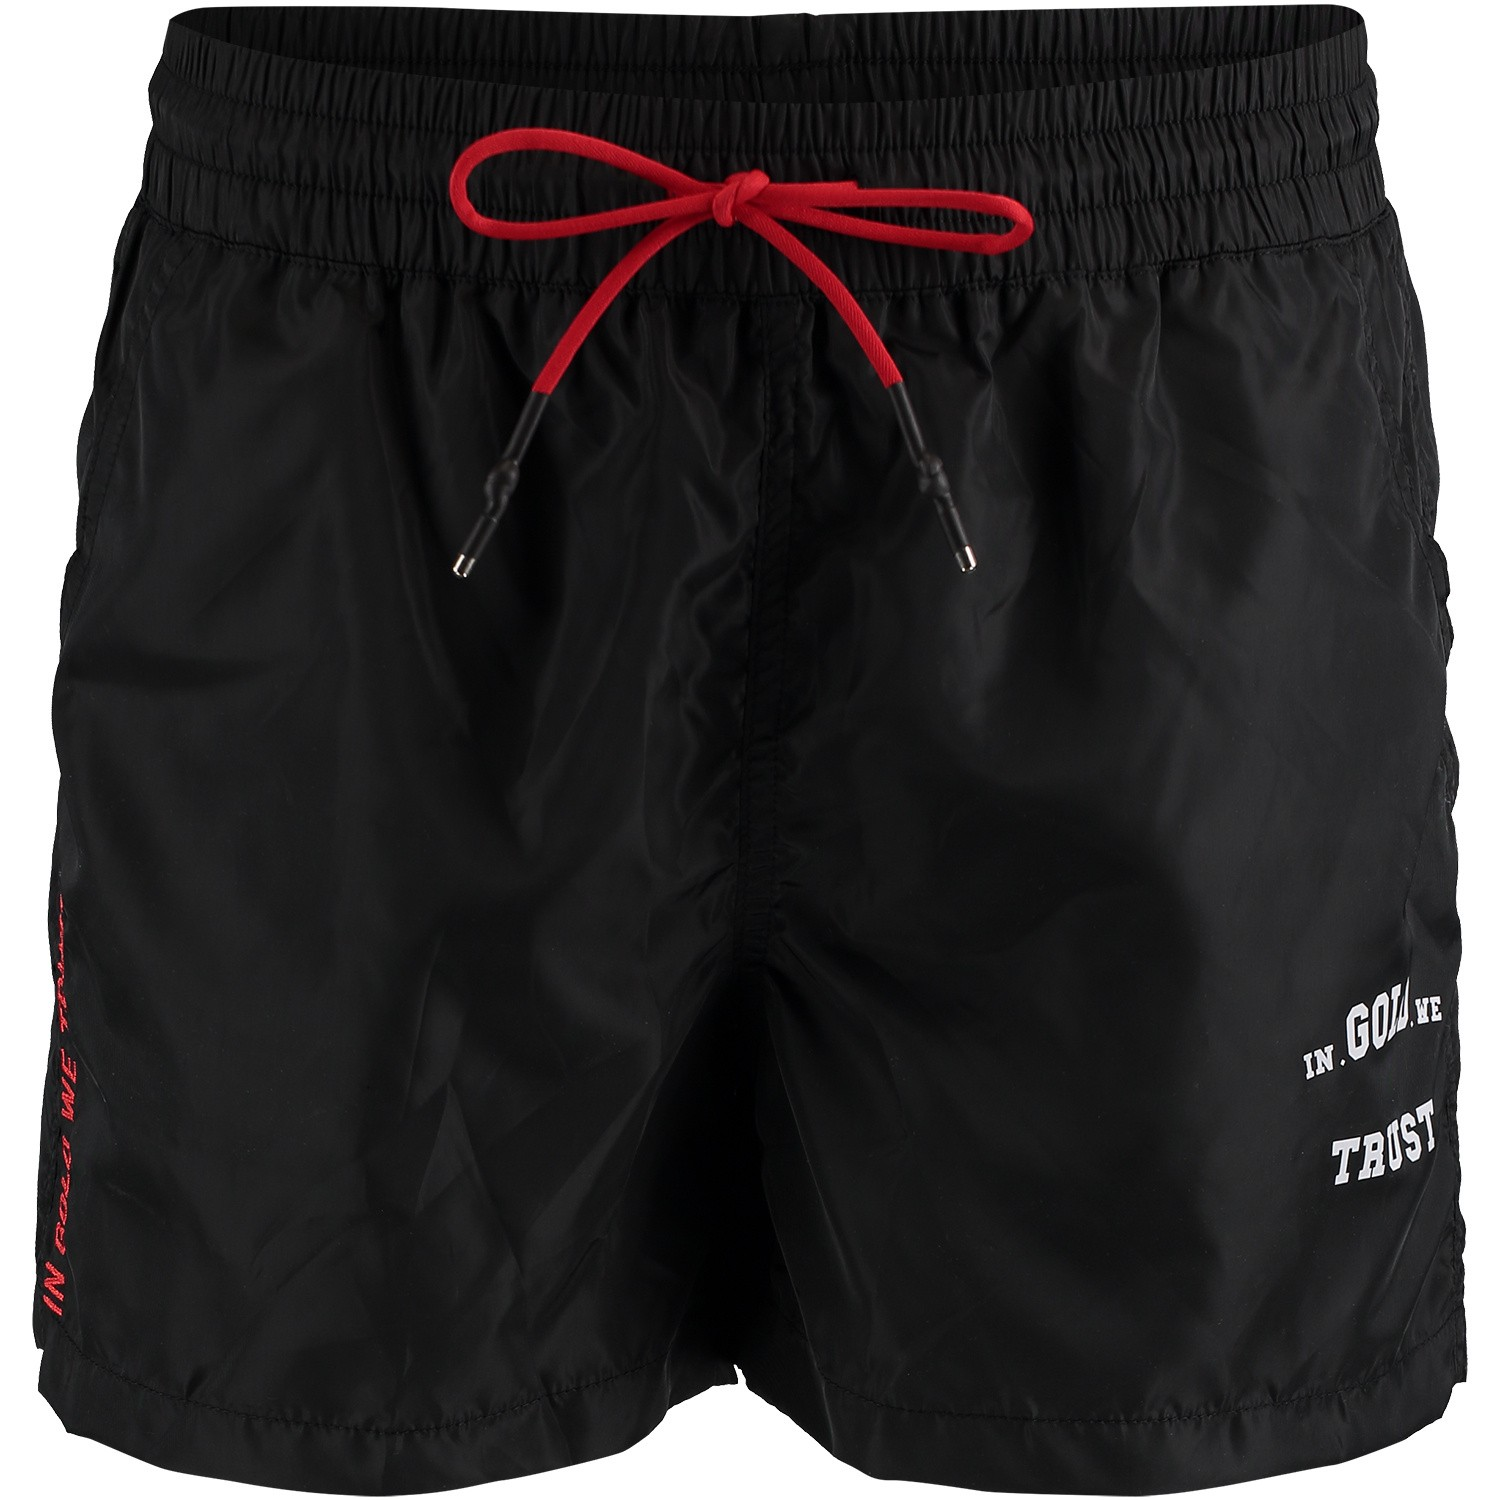 Picture of in Gold We Trust FASW002 mens swimshorts black